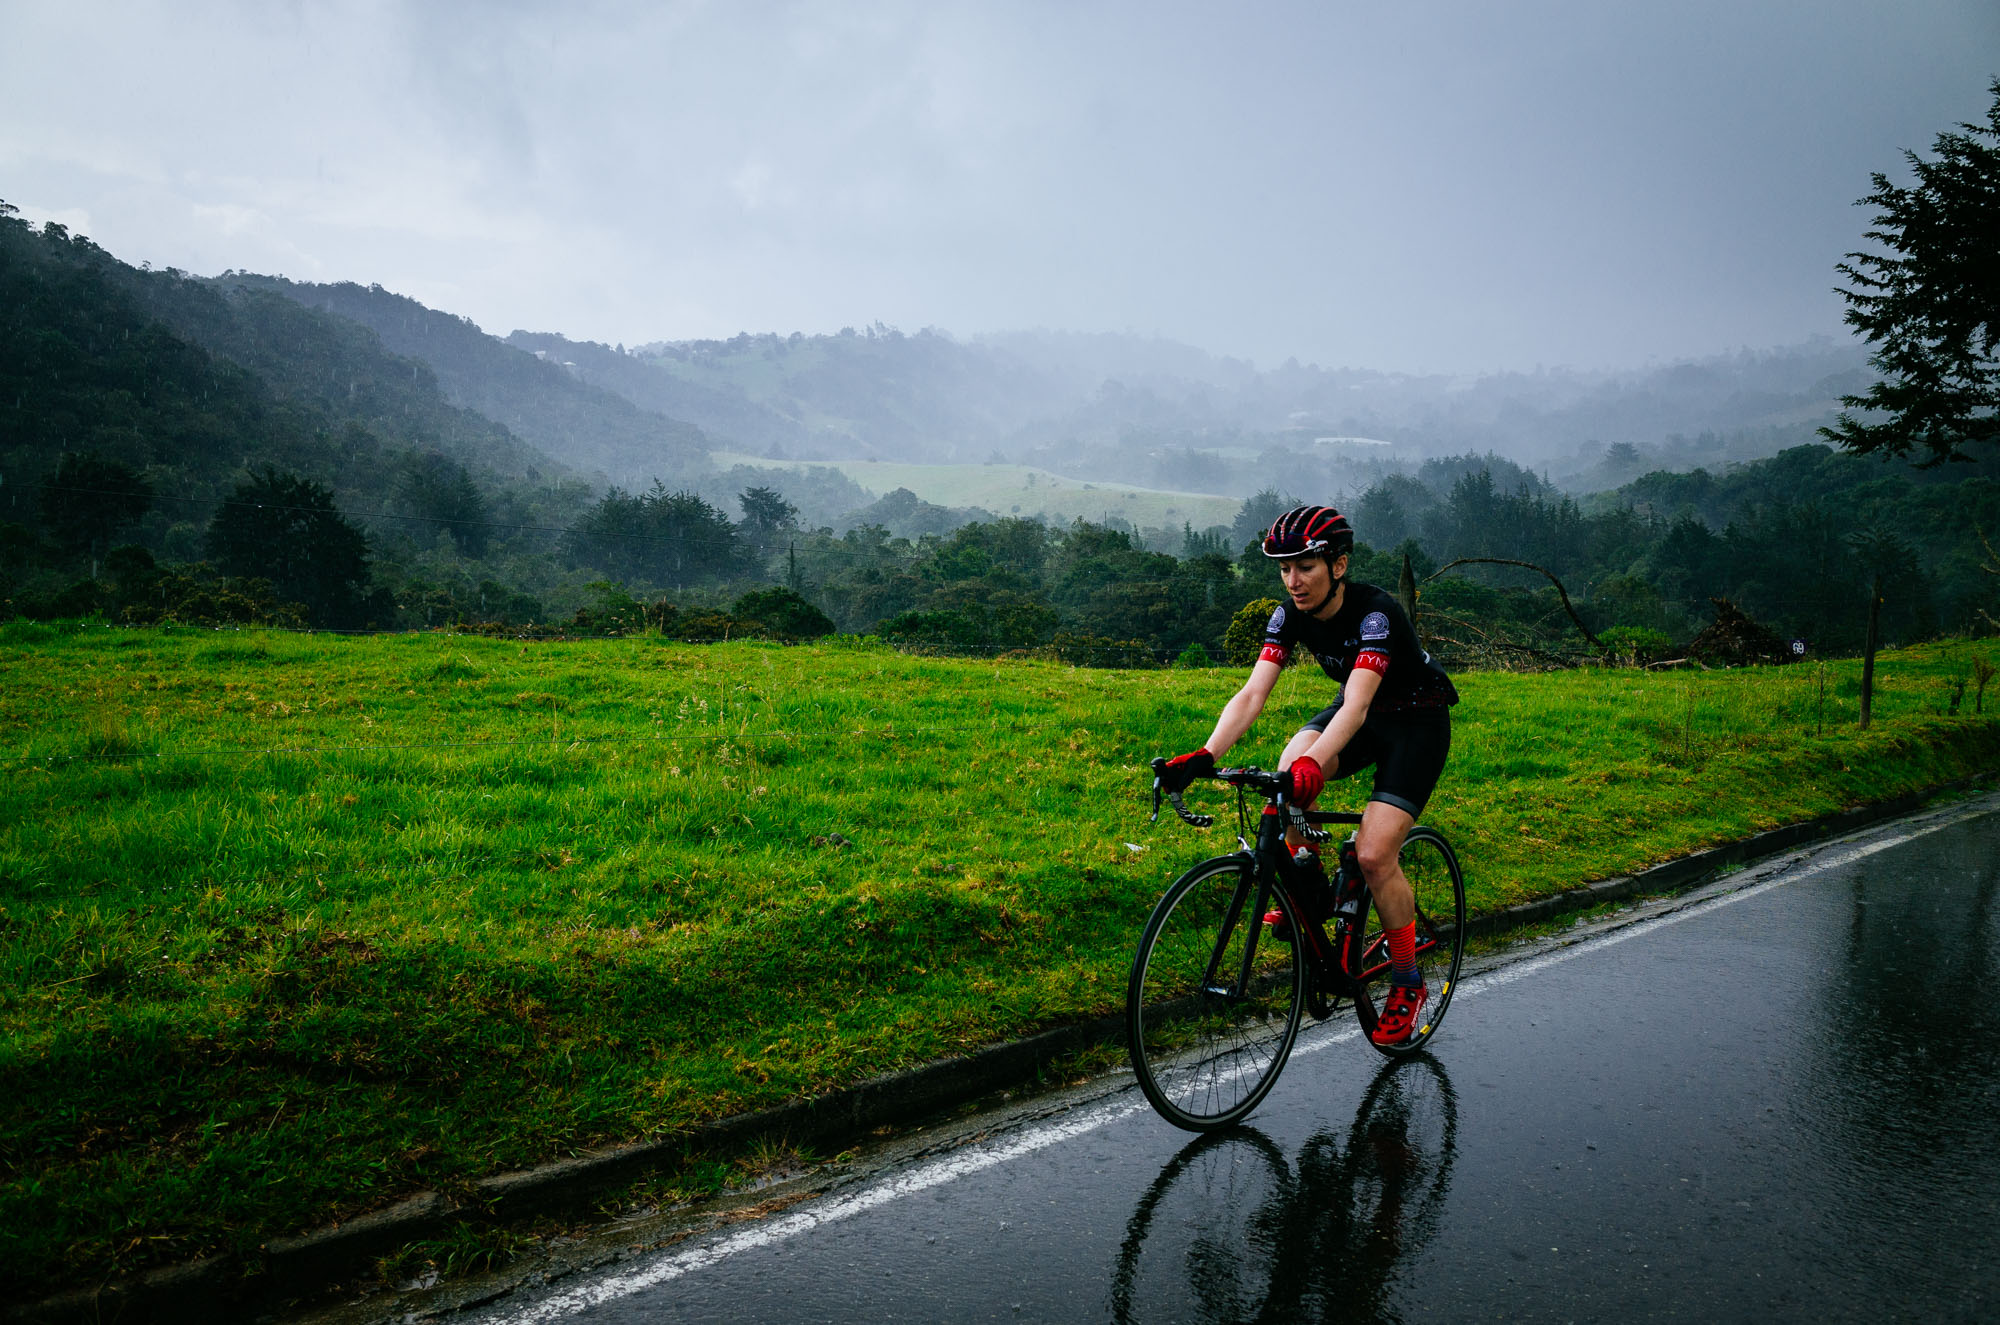 to-be-determined-photo-rhetoric-cycling-in-colombia-1035.jpg